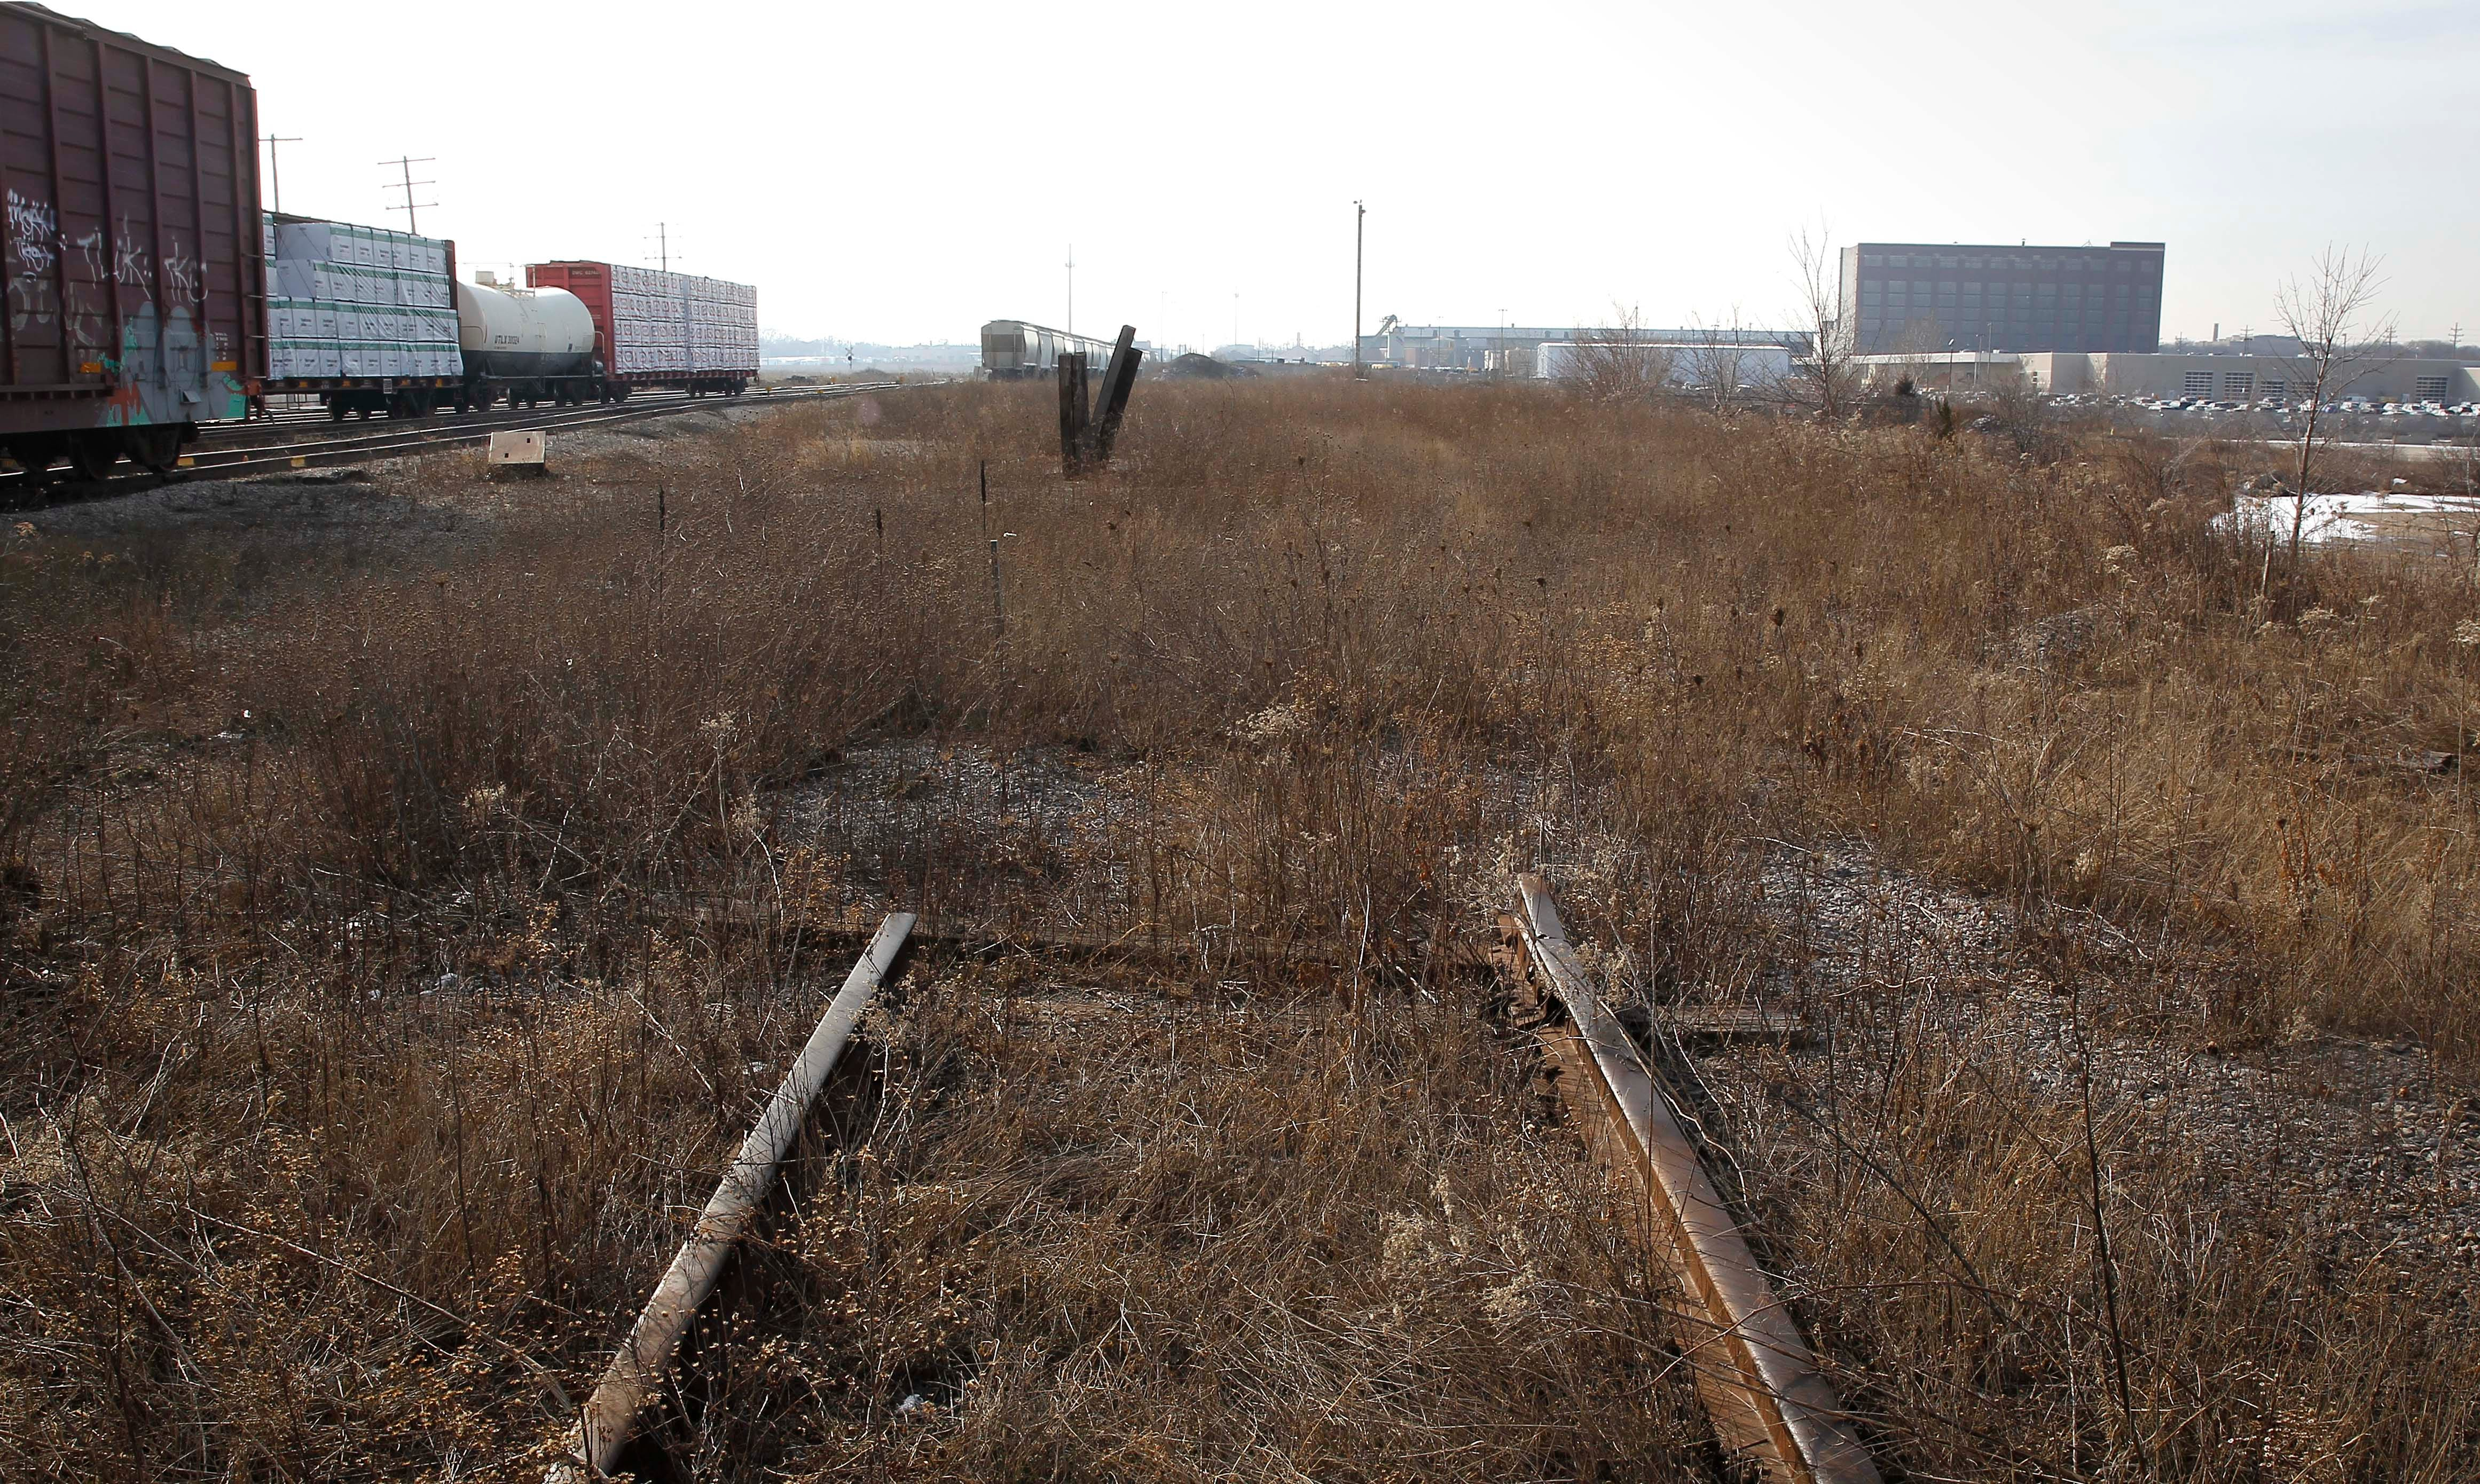 A once thriving rail yard at North 35th Street and West Capitol Drive moved car frames from A. O. Smith and other manufacturing companies. It is now desolate except for a few rail lines.